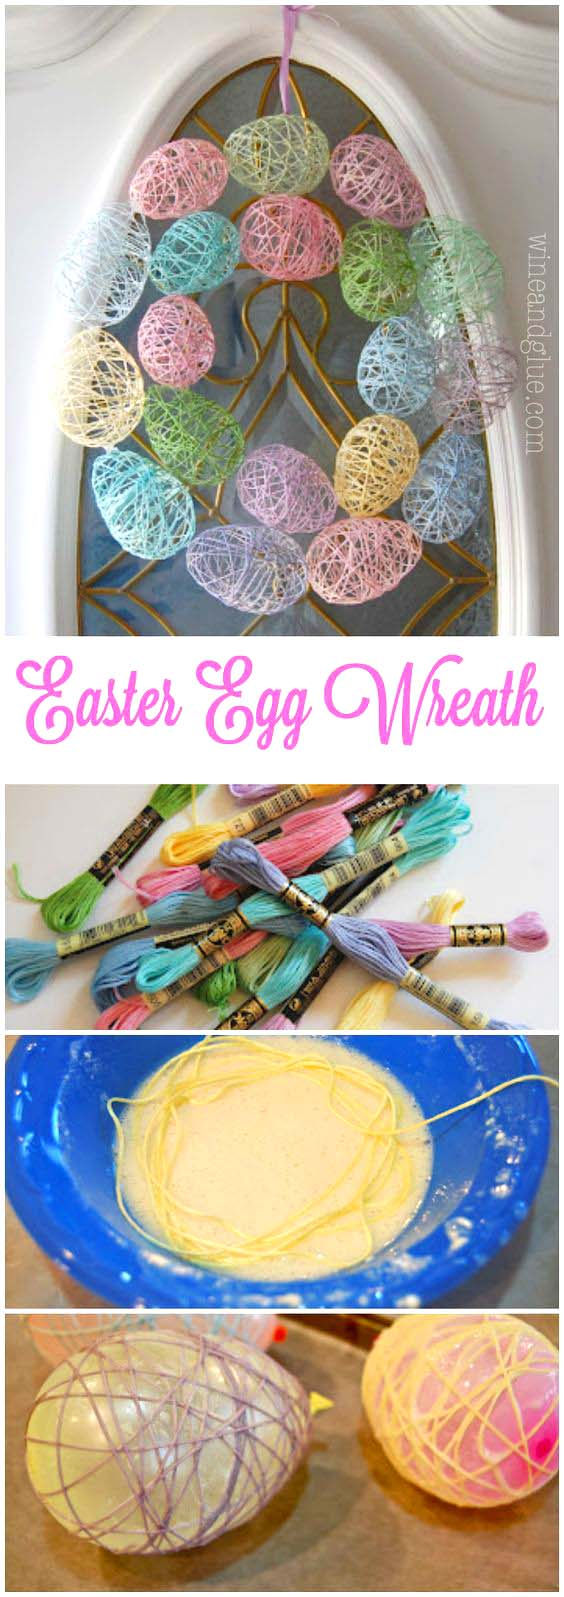 Easter Eggs Wreath #easter #crafts #diy #decorhomeideas